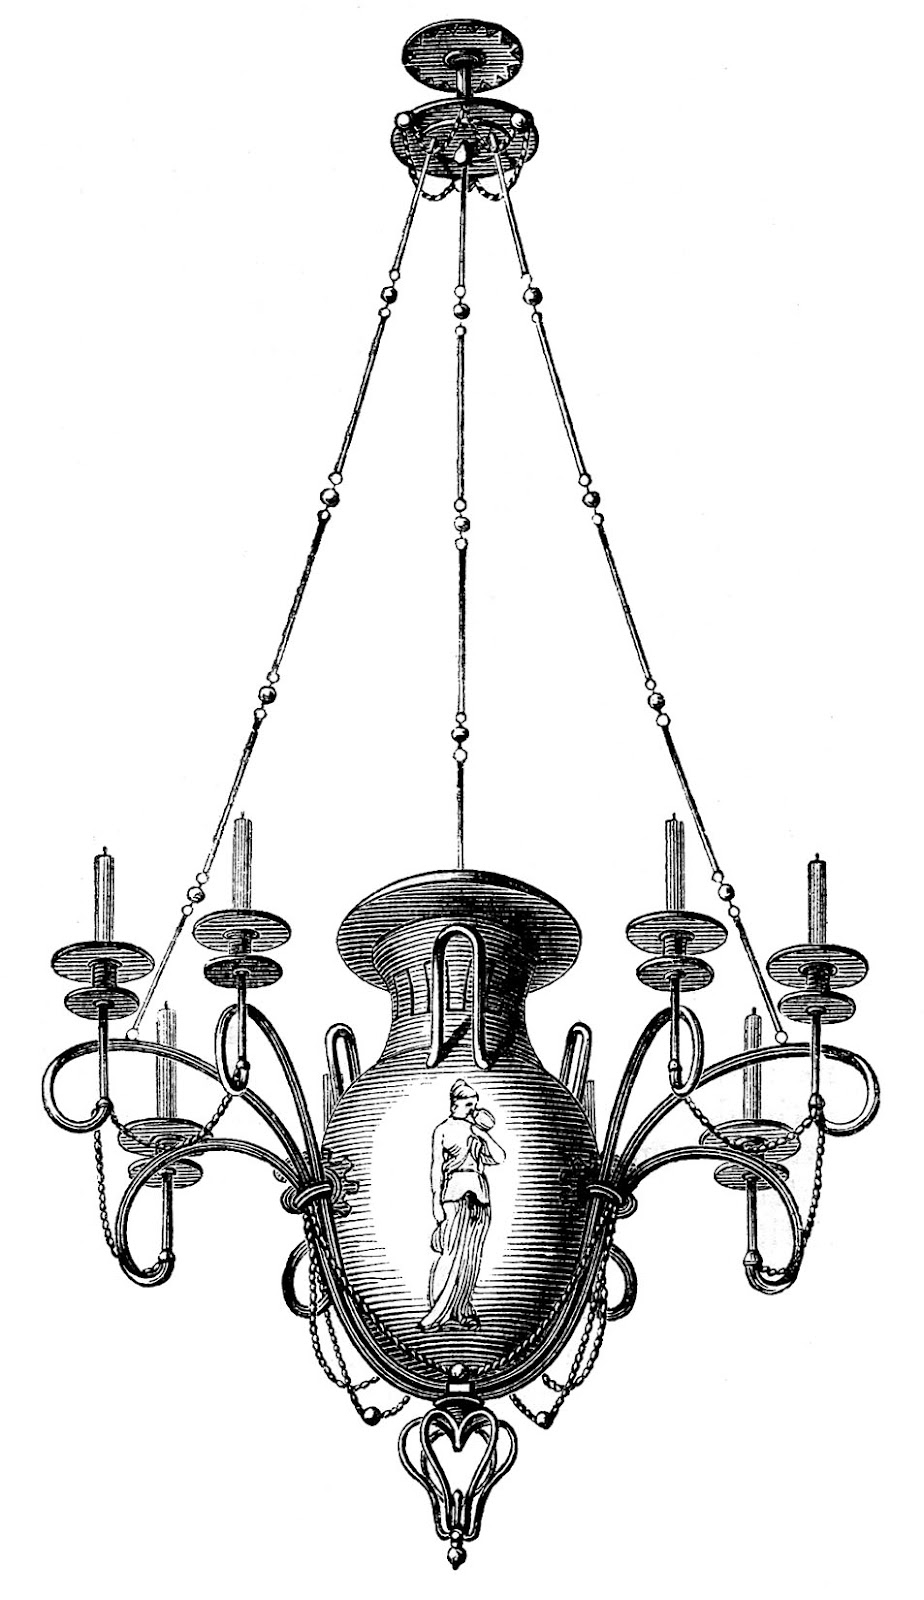 Antique Images 3 Chandeliers 1 Spooky The Graphics Fairy With Regard To Antique Chandeliers (Image 5 of 15)